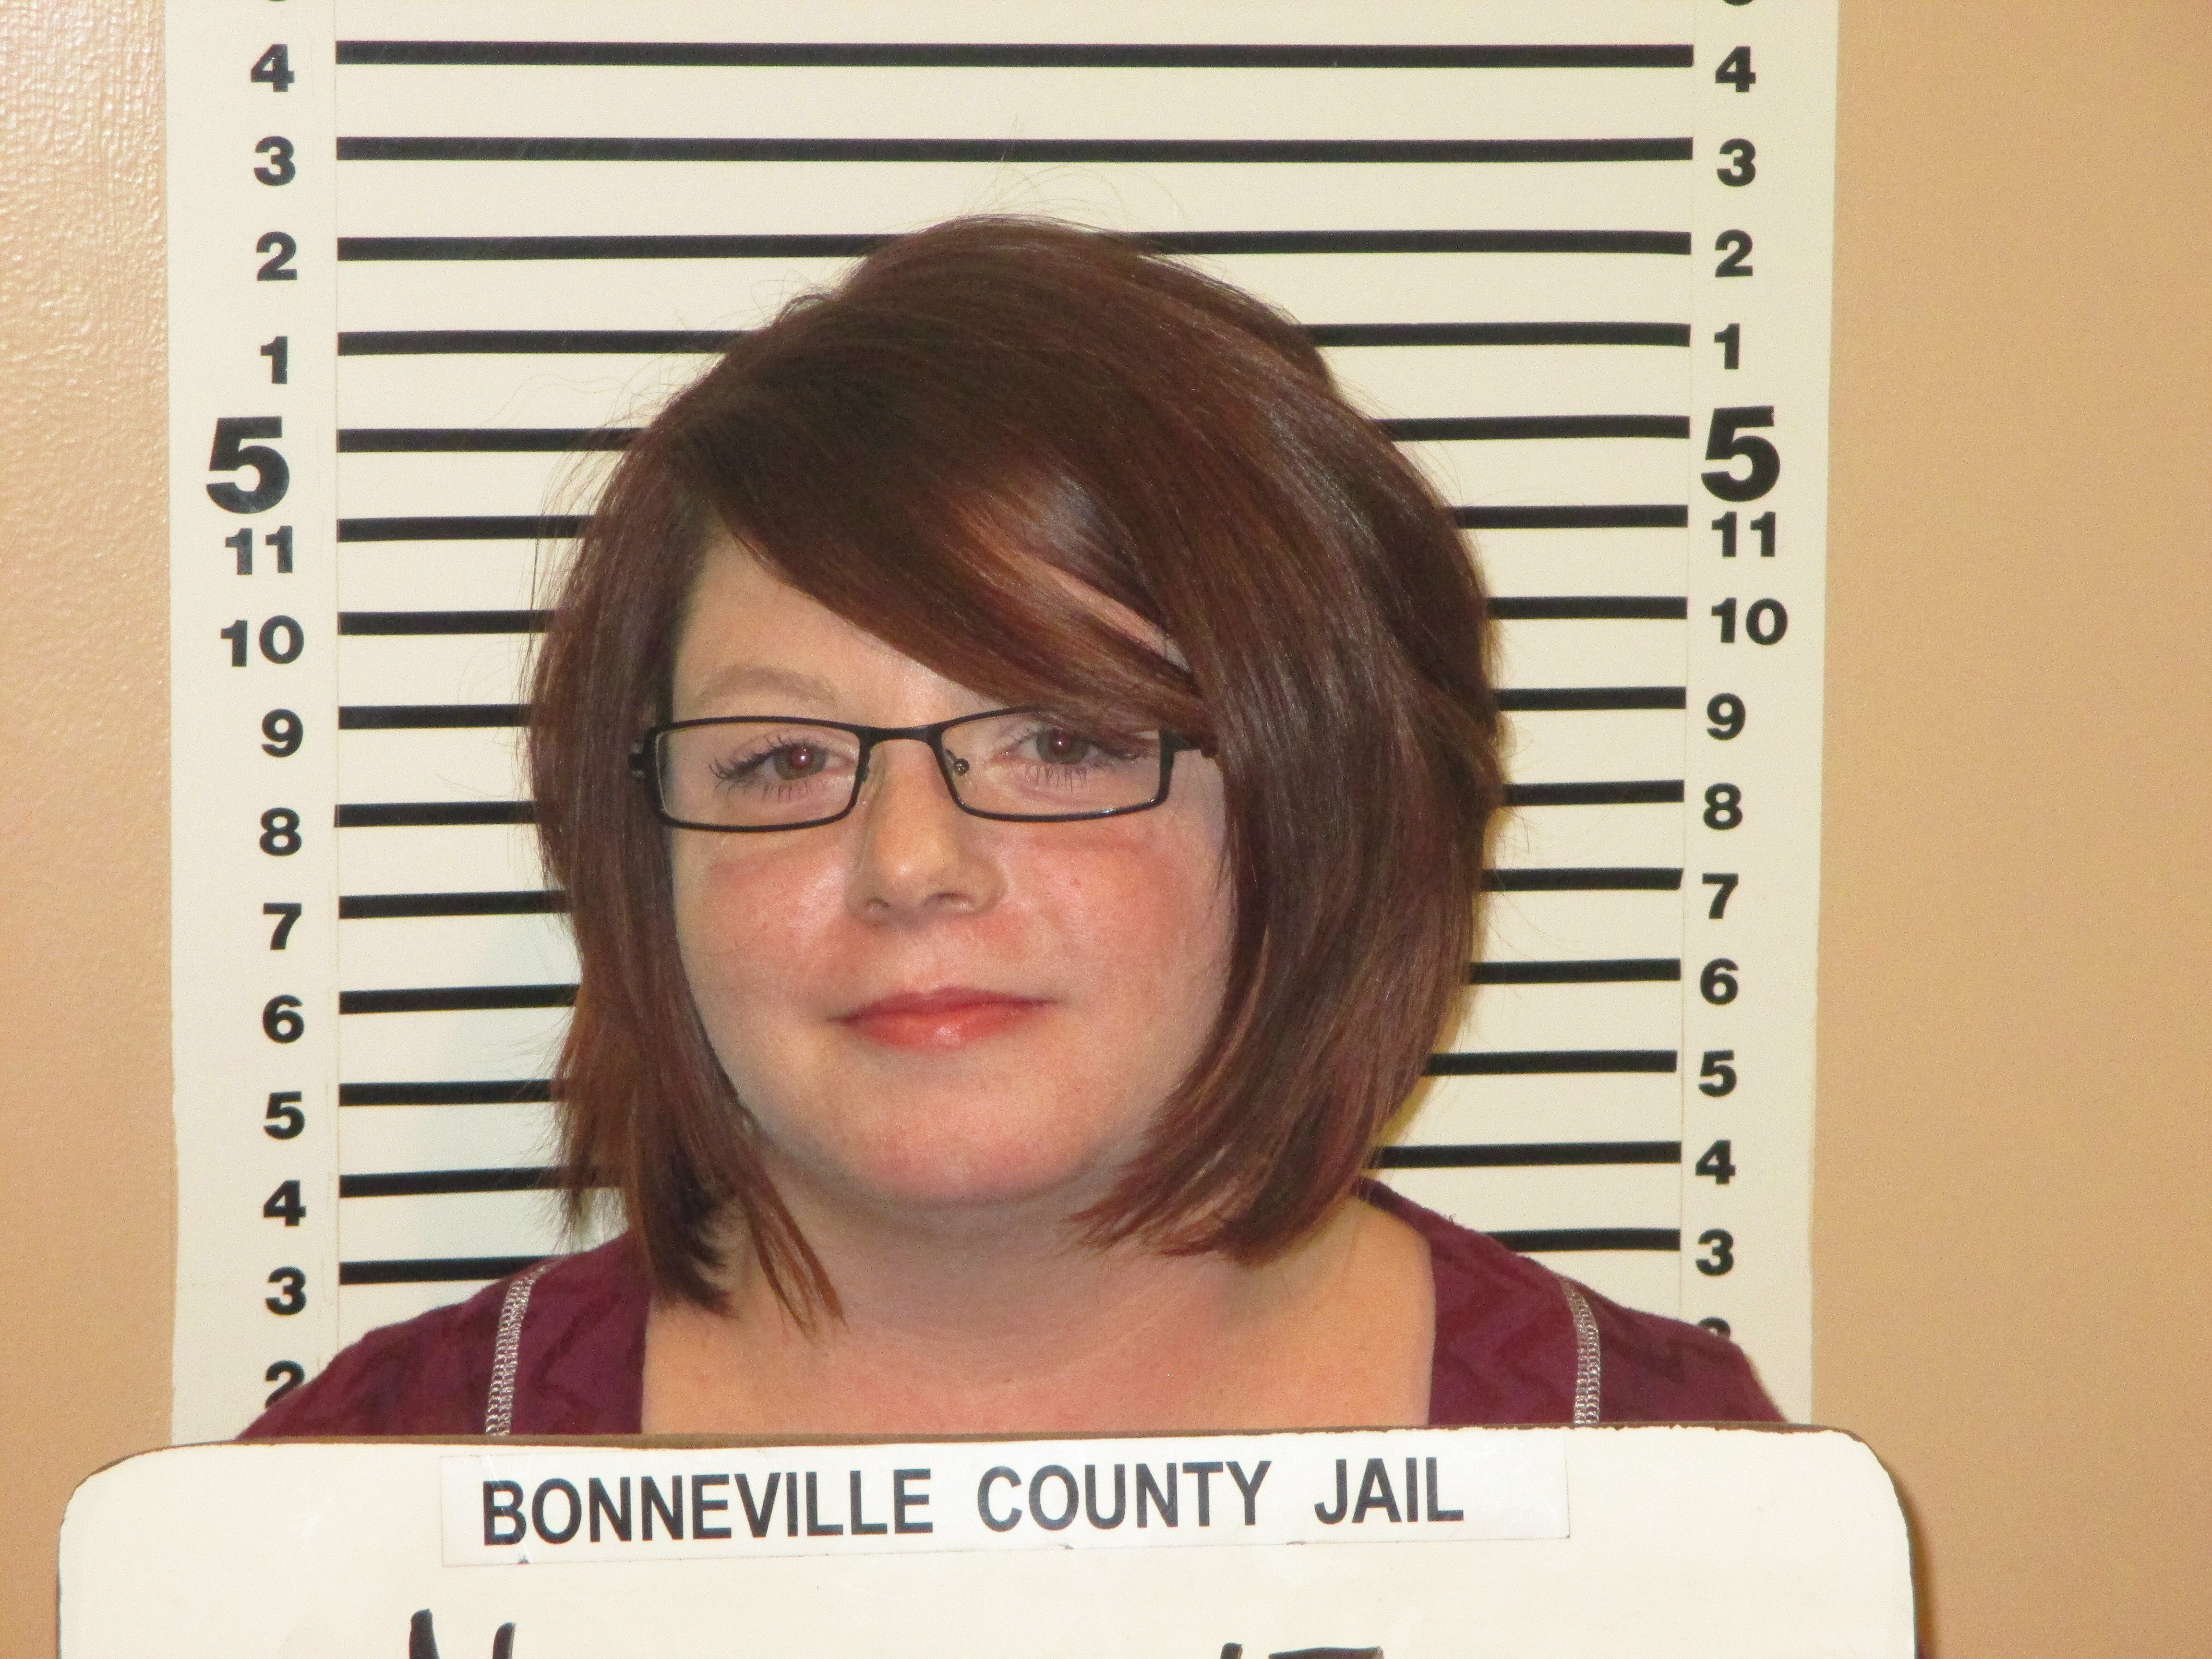 Idaho Falls woman accused of attempted strangulation